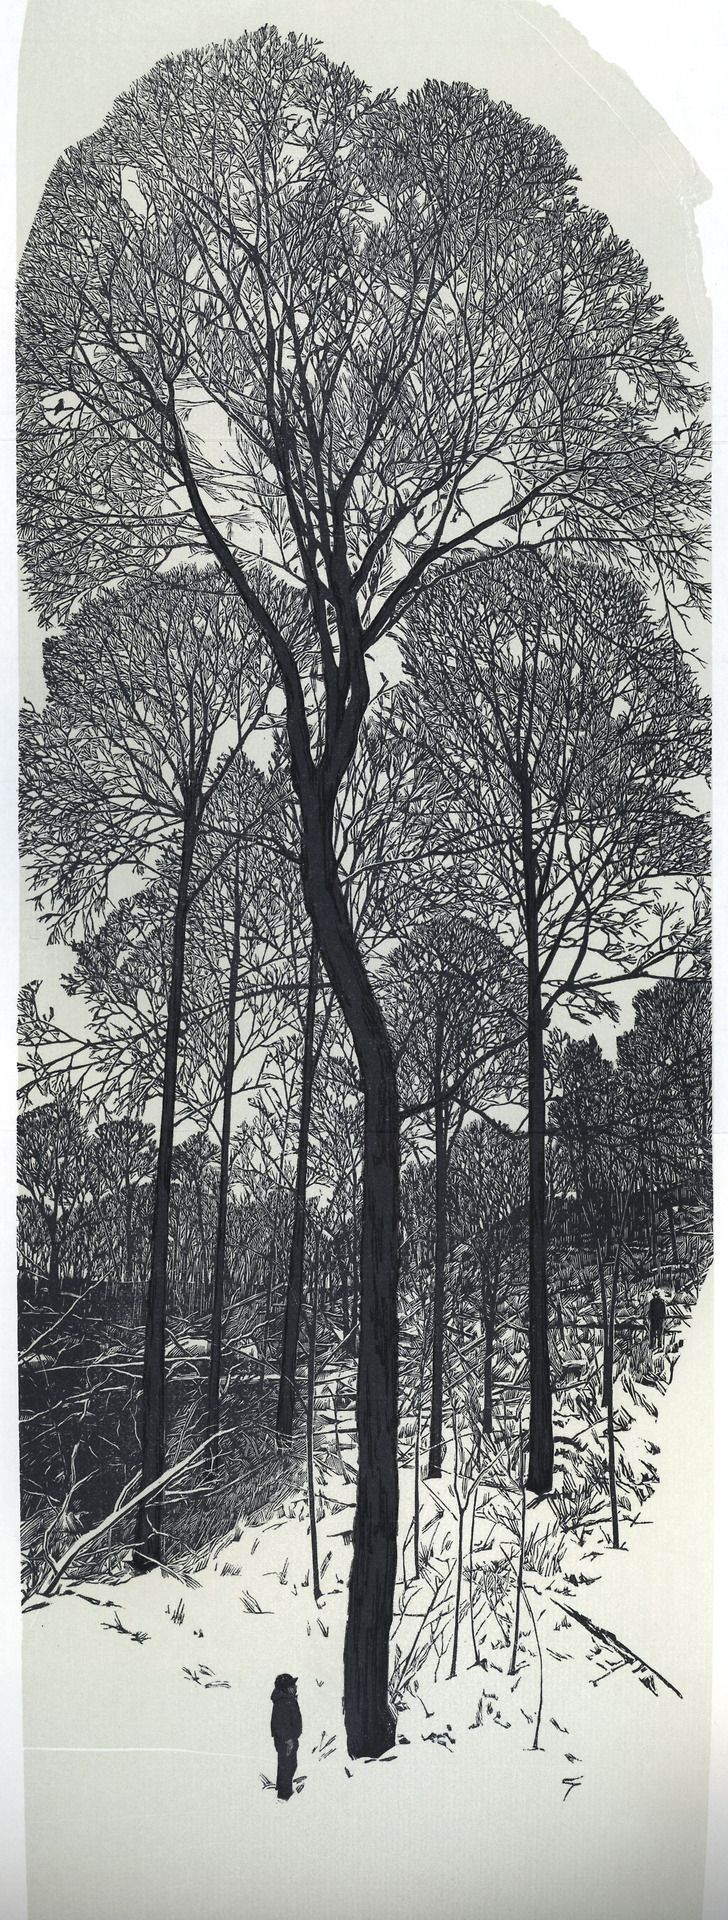 Wood engraving by Gaylord Schanilec from his book Sylvae (Stockholm, Wis.: Midnight Paper Sales, 2007)